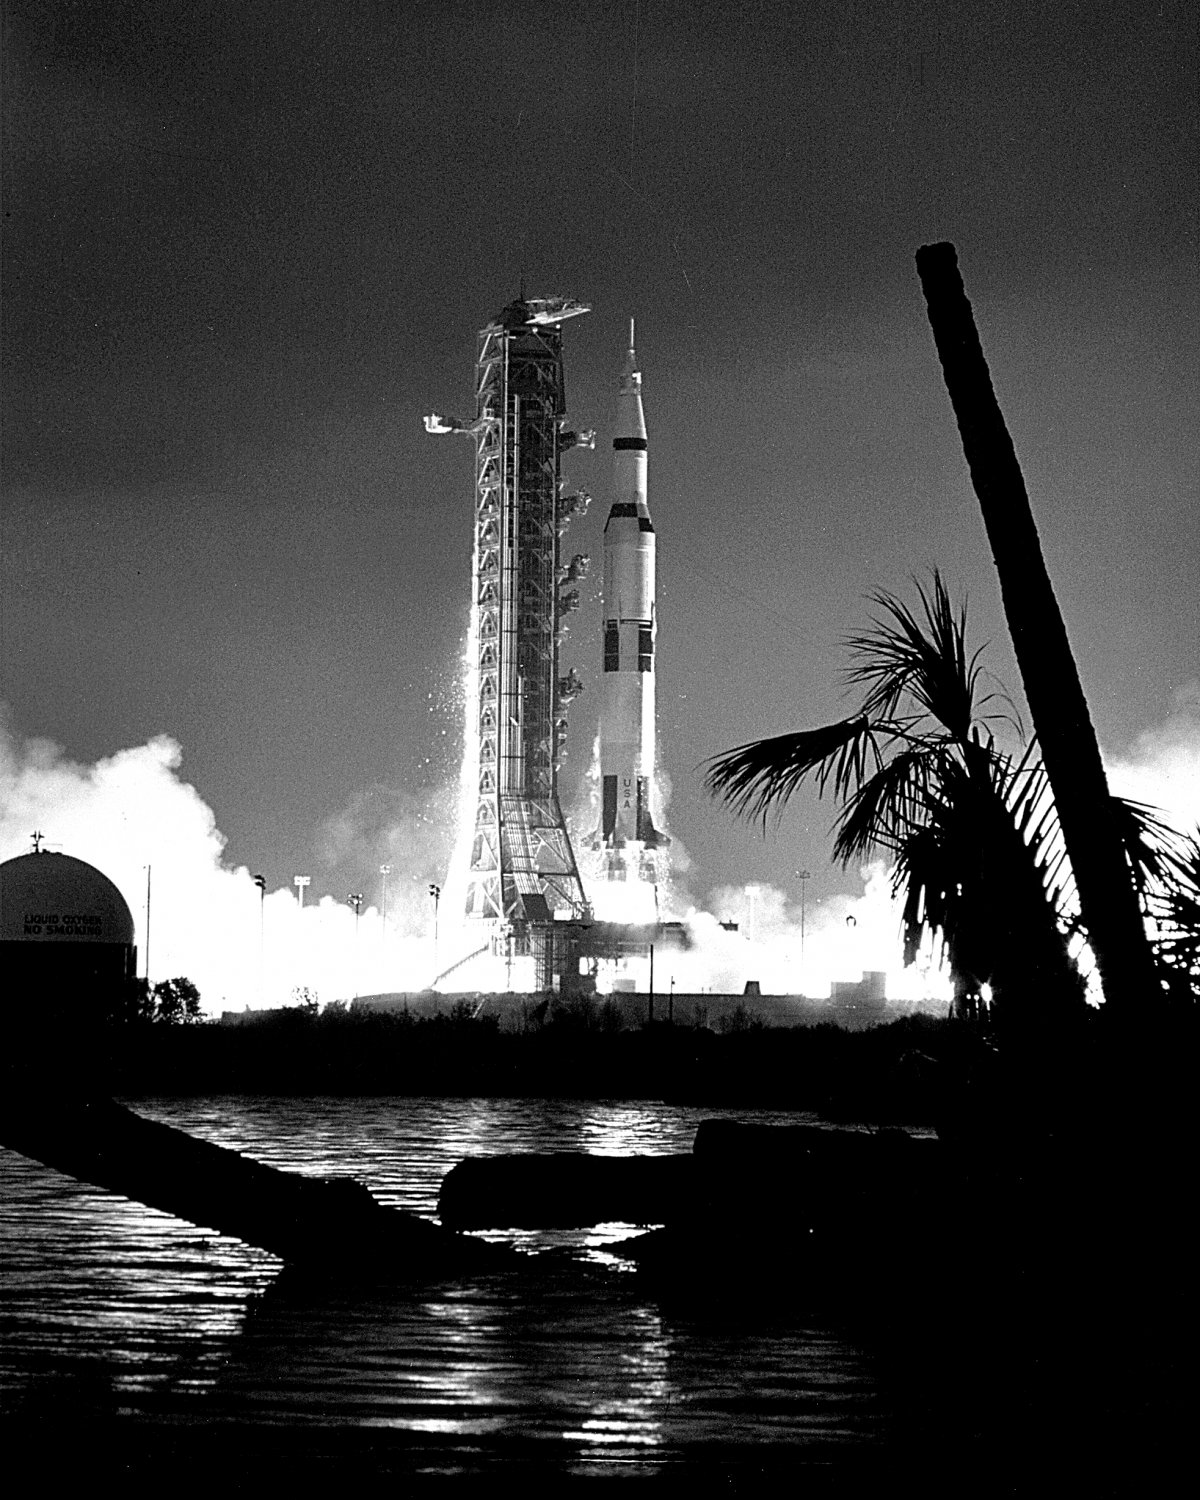 LAUNCH OF APOLLO 14 FROM LAUNCH COMPLEX 39A - 8X10 NASA ...